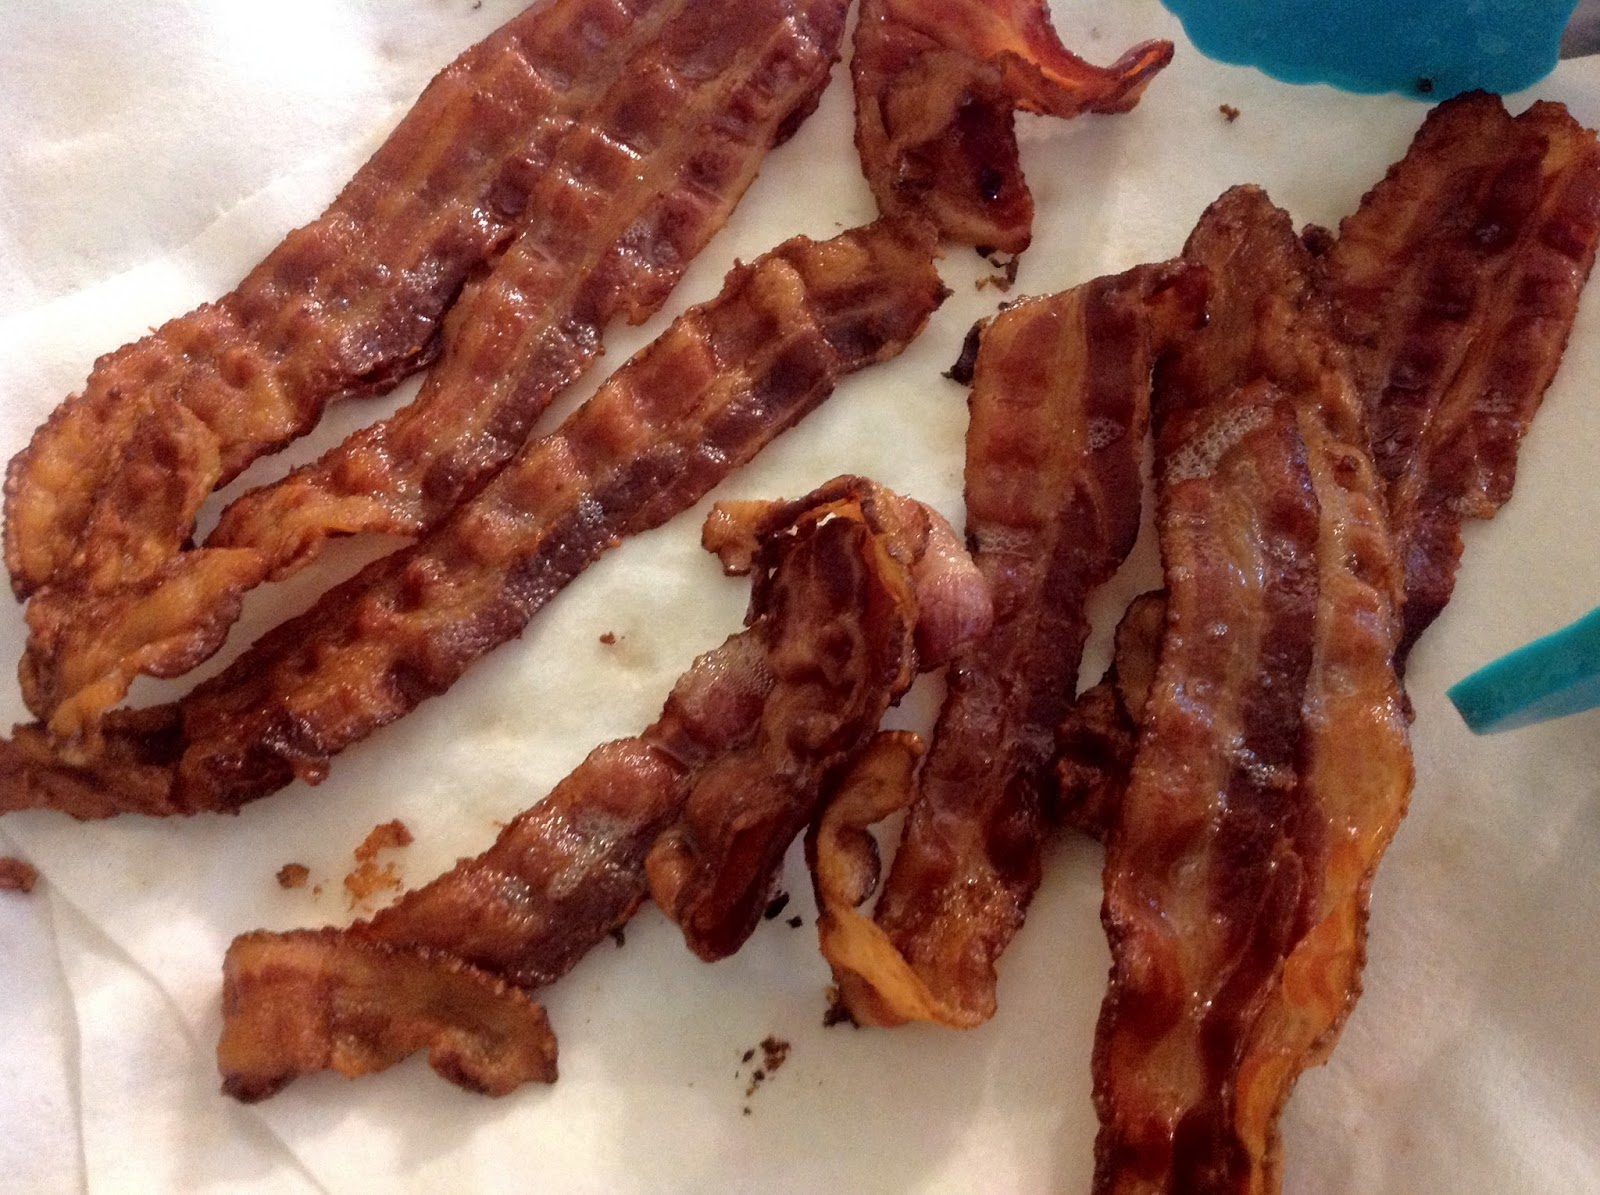 Remove The Pan From The Oven, Place The Bacon On A Paper Towel To Properly